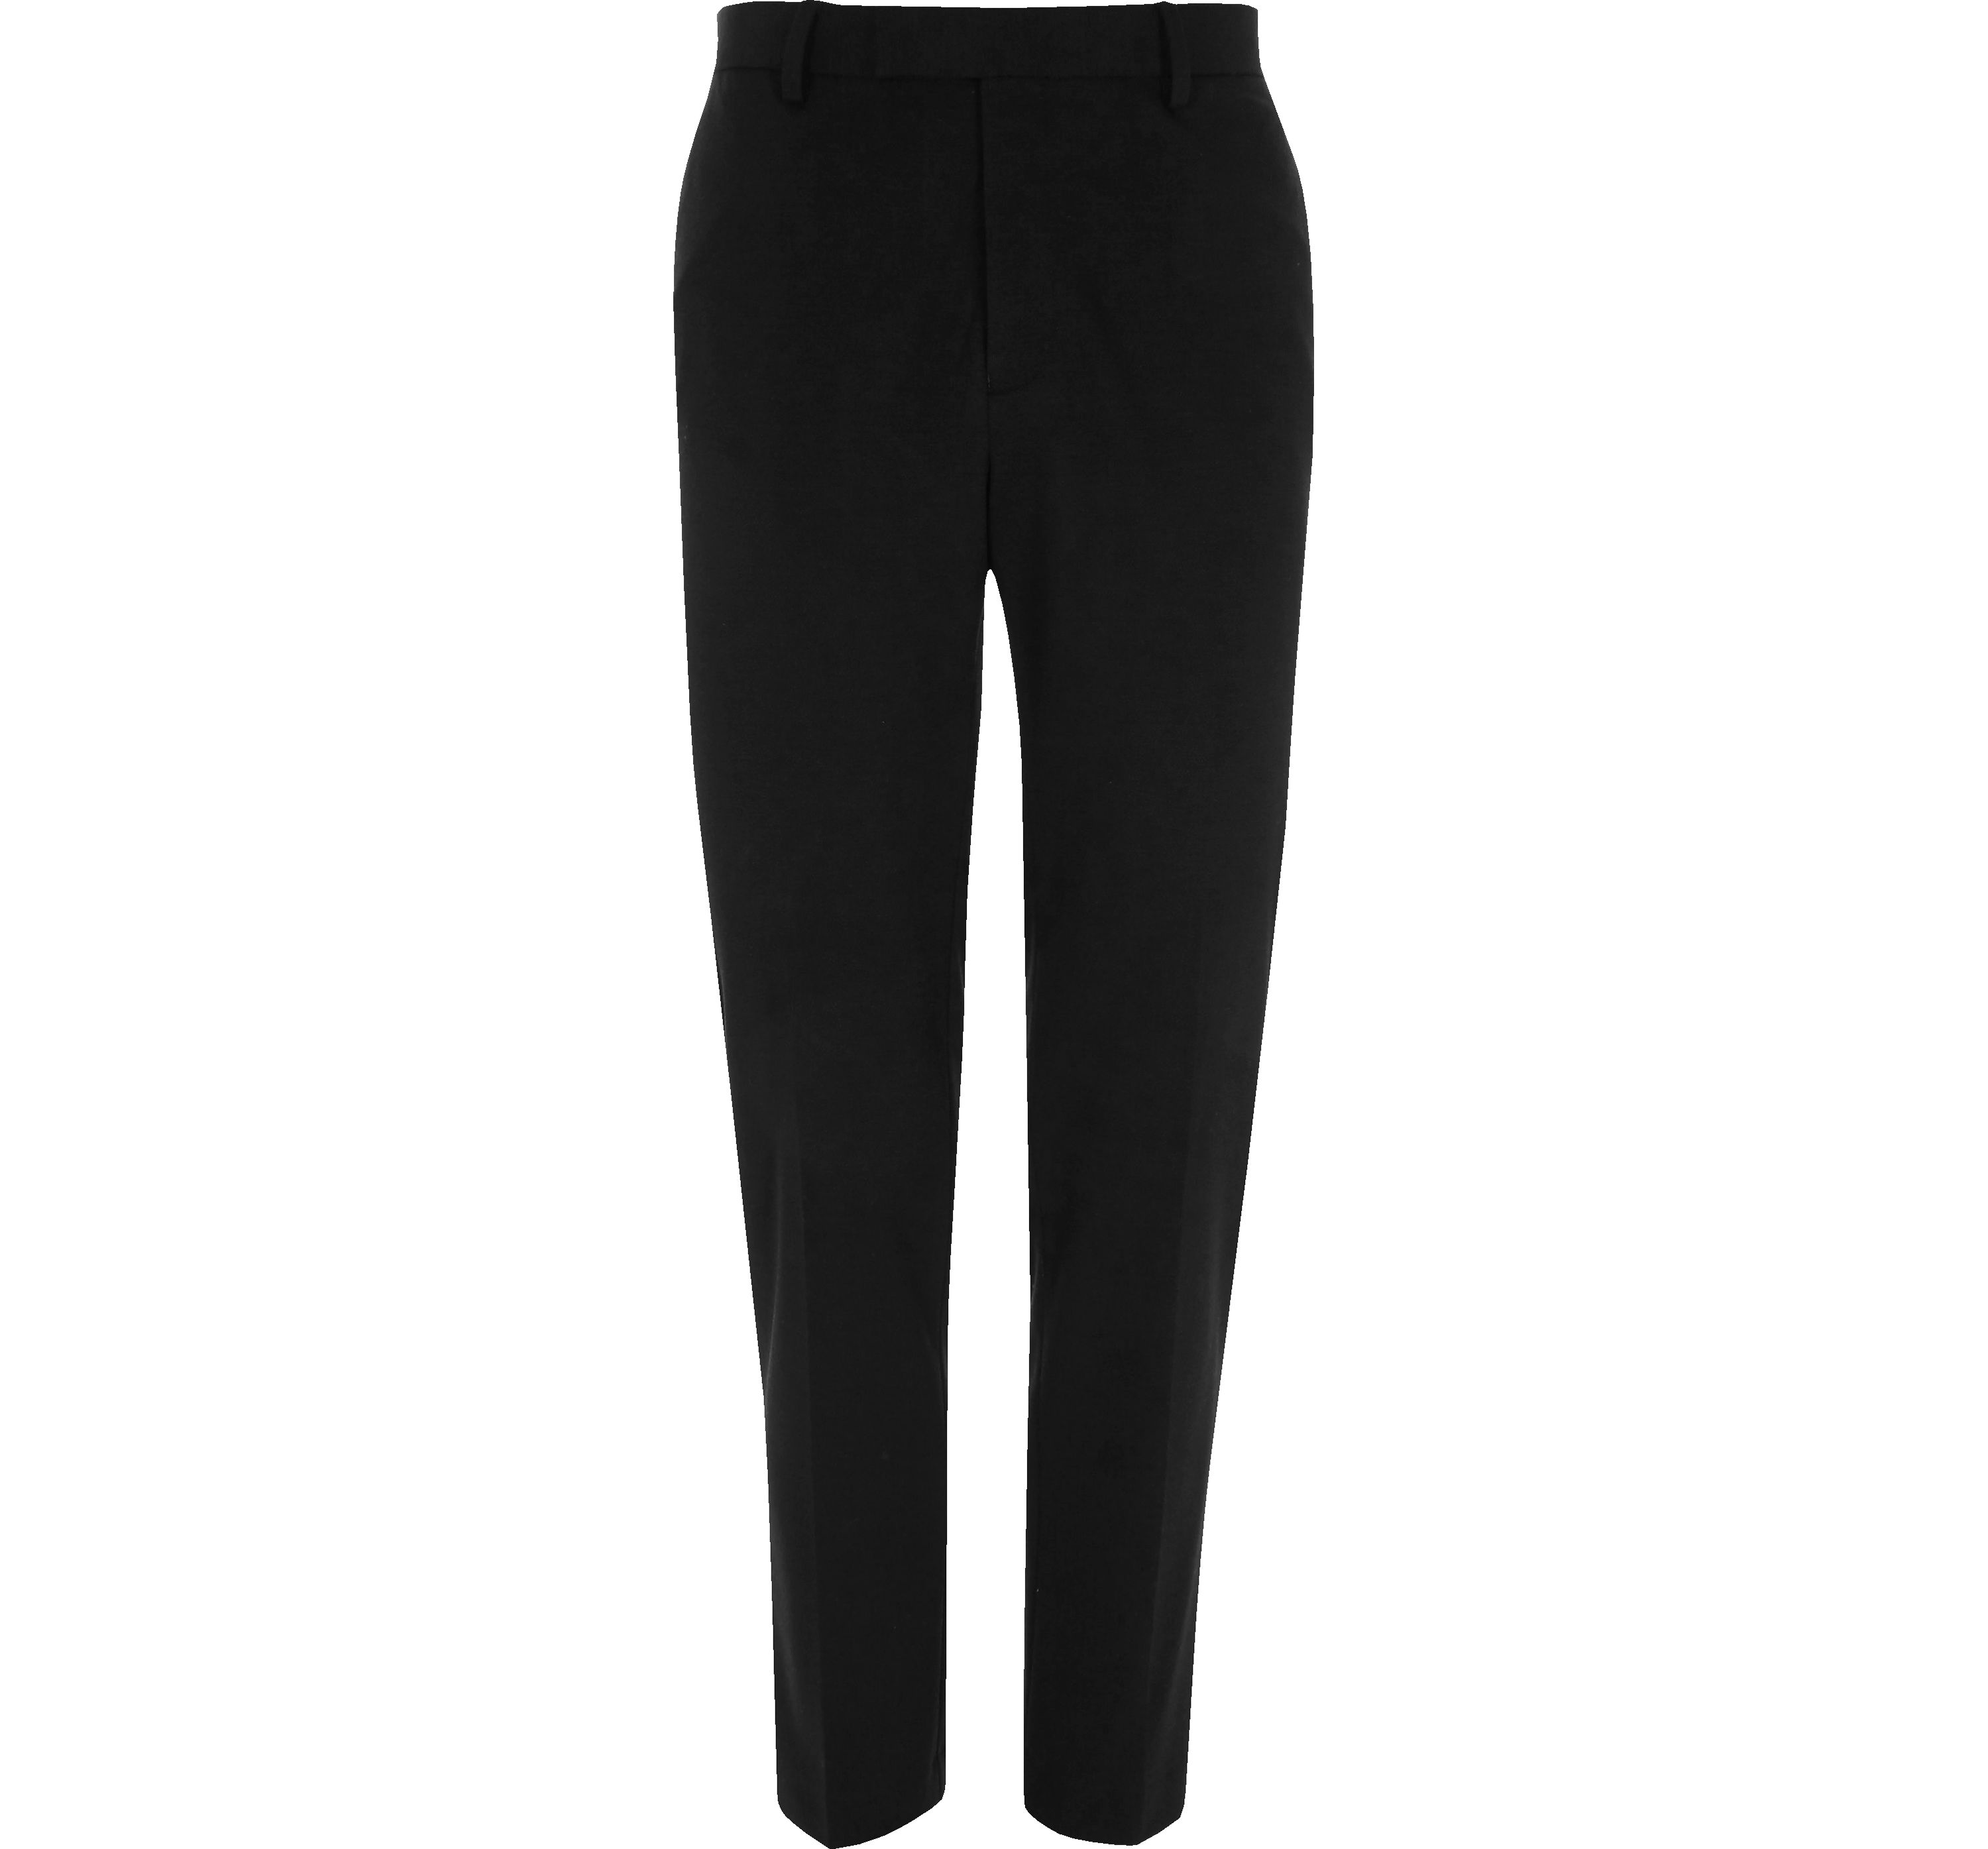 River Island Mens Black jersey skinny fit trousers